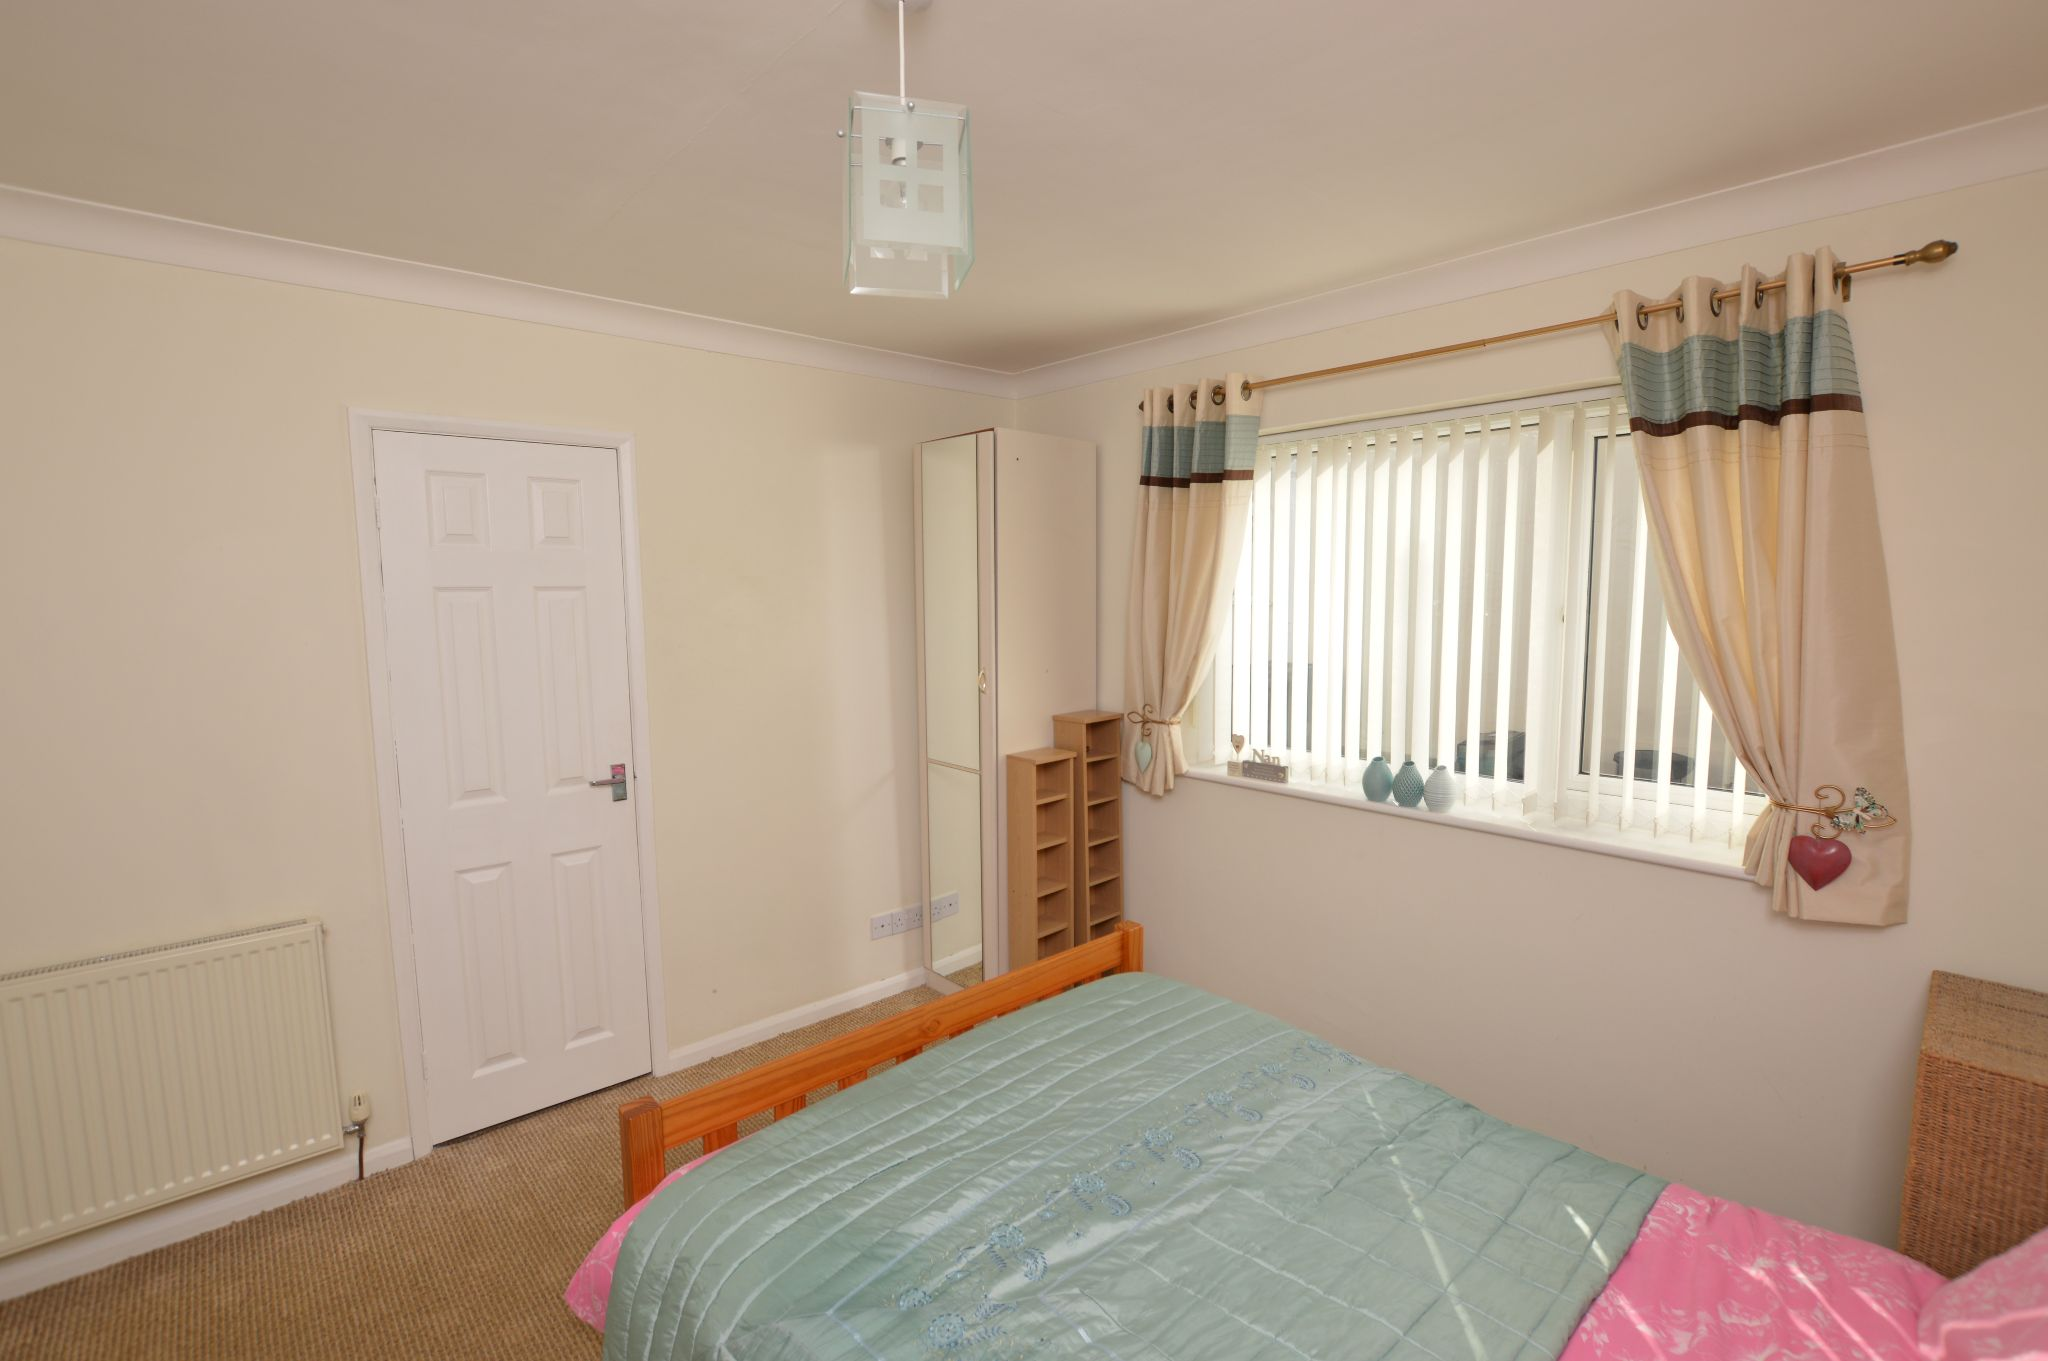 2 bedroom detached bungalow For Sale in Abergele - Bedroom 2 View 2